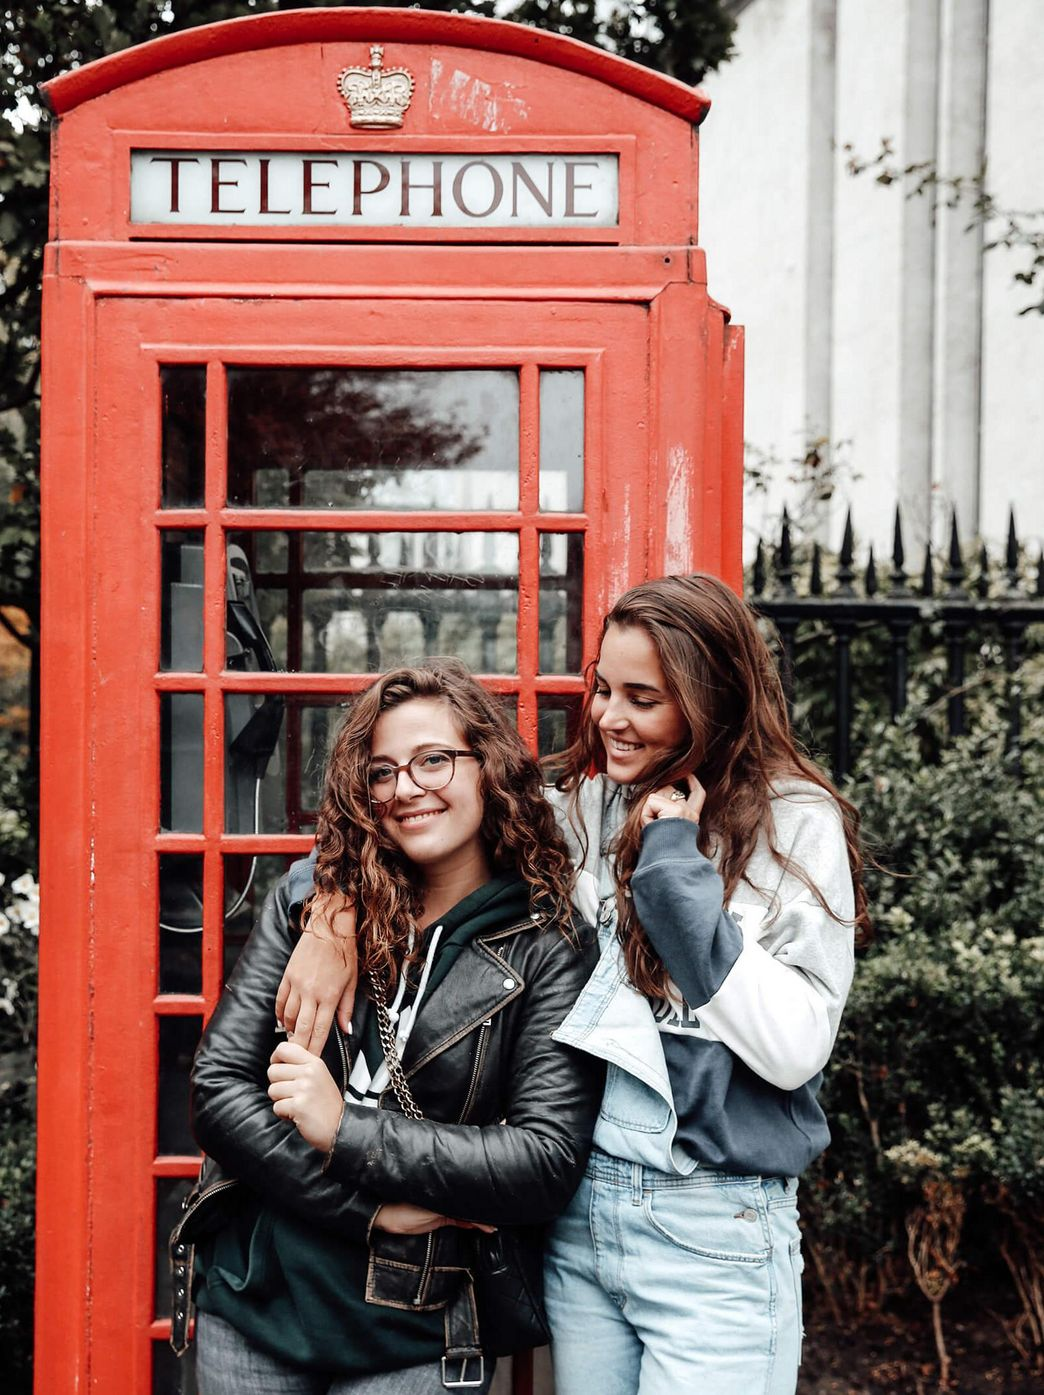 London Telefonbox